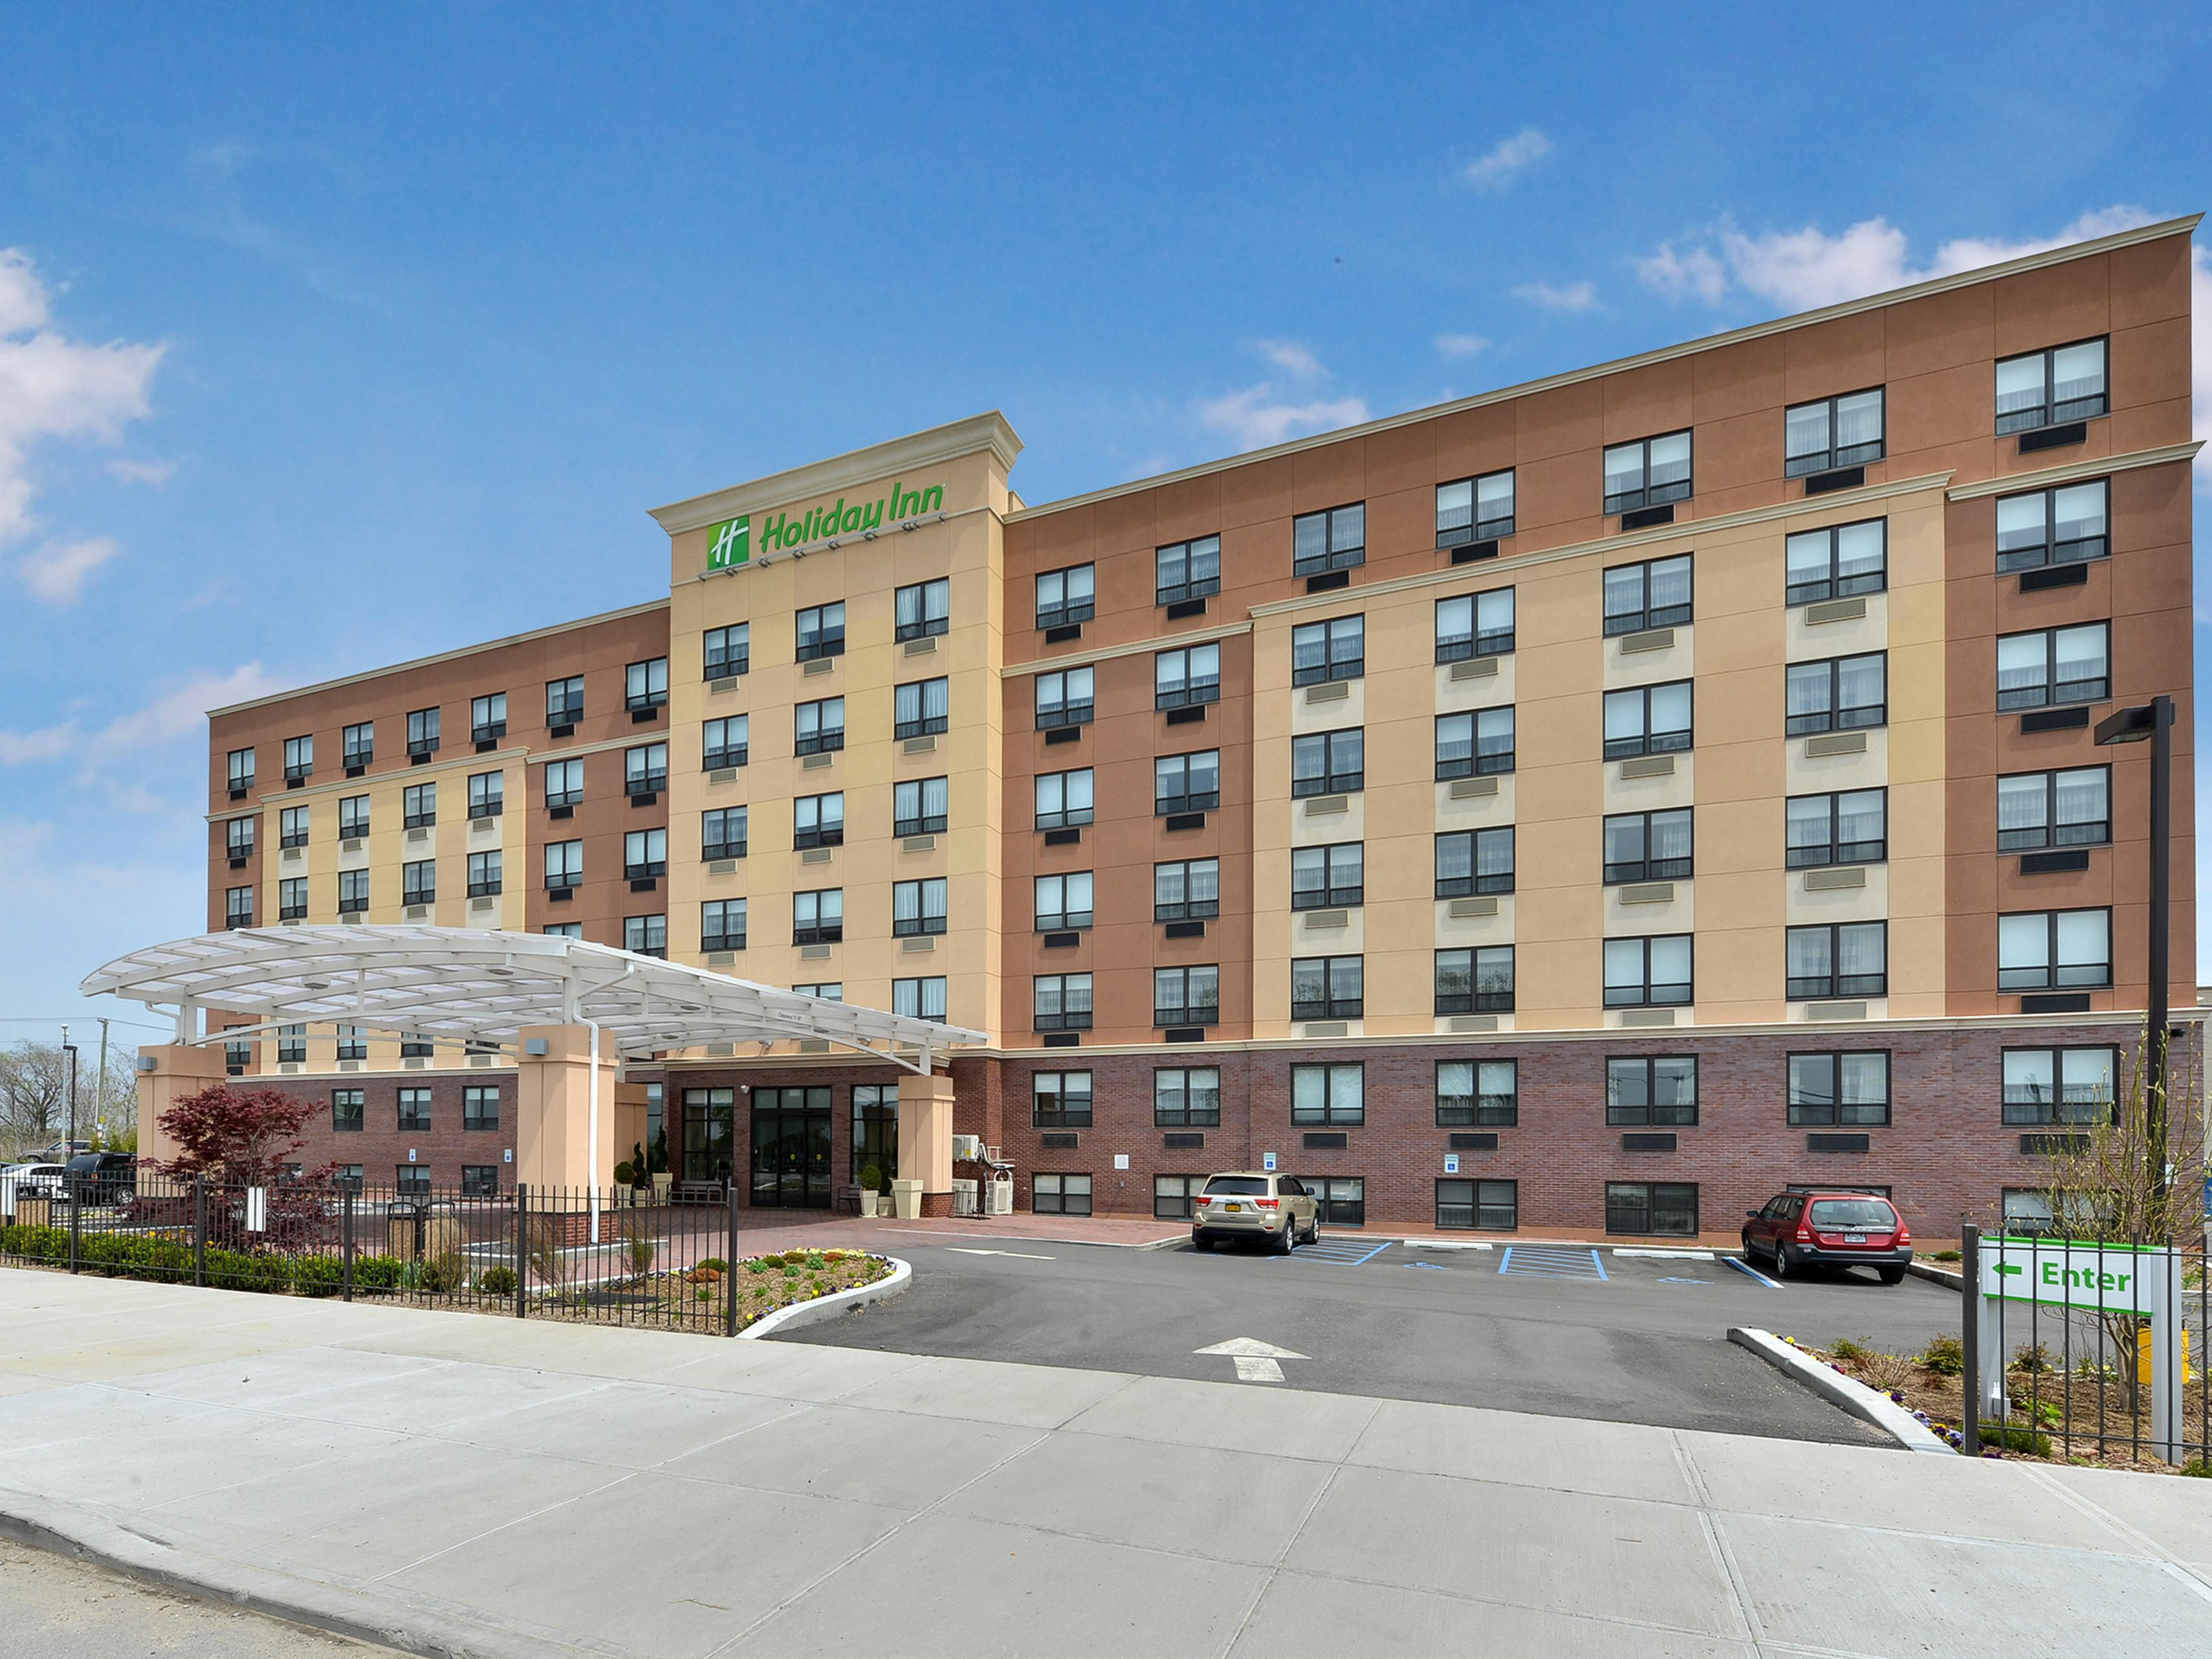 Albergo York Jfk Airport Hotels In Queens Nyc Holiday Inn New York Jfk Airport